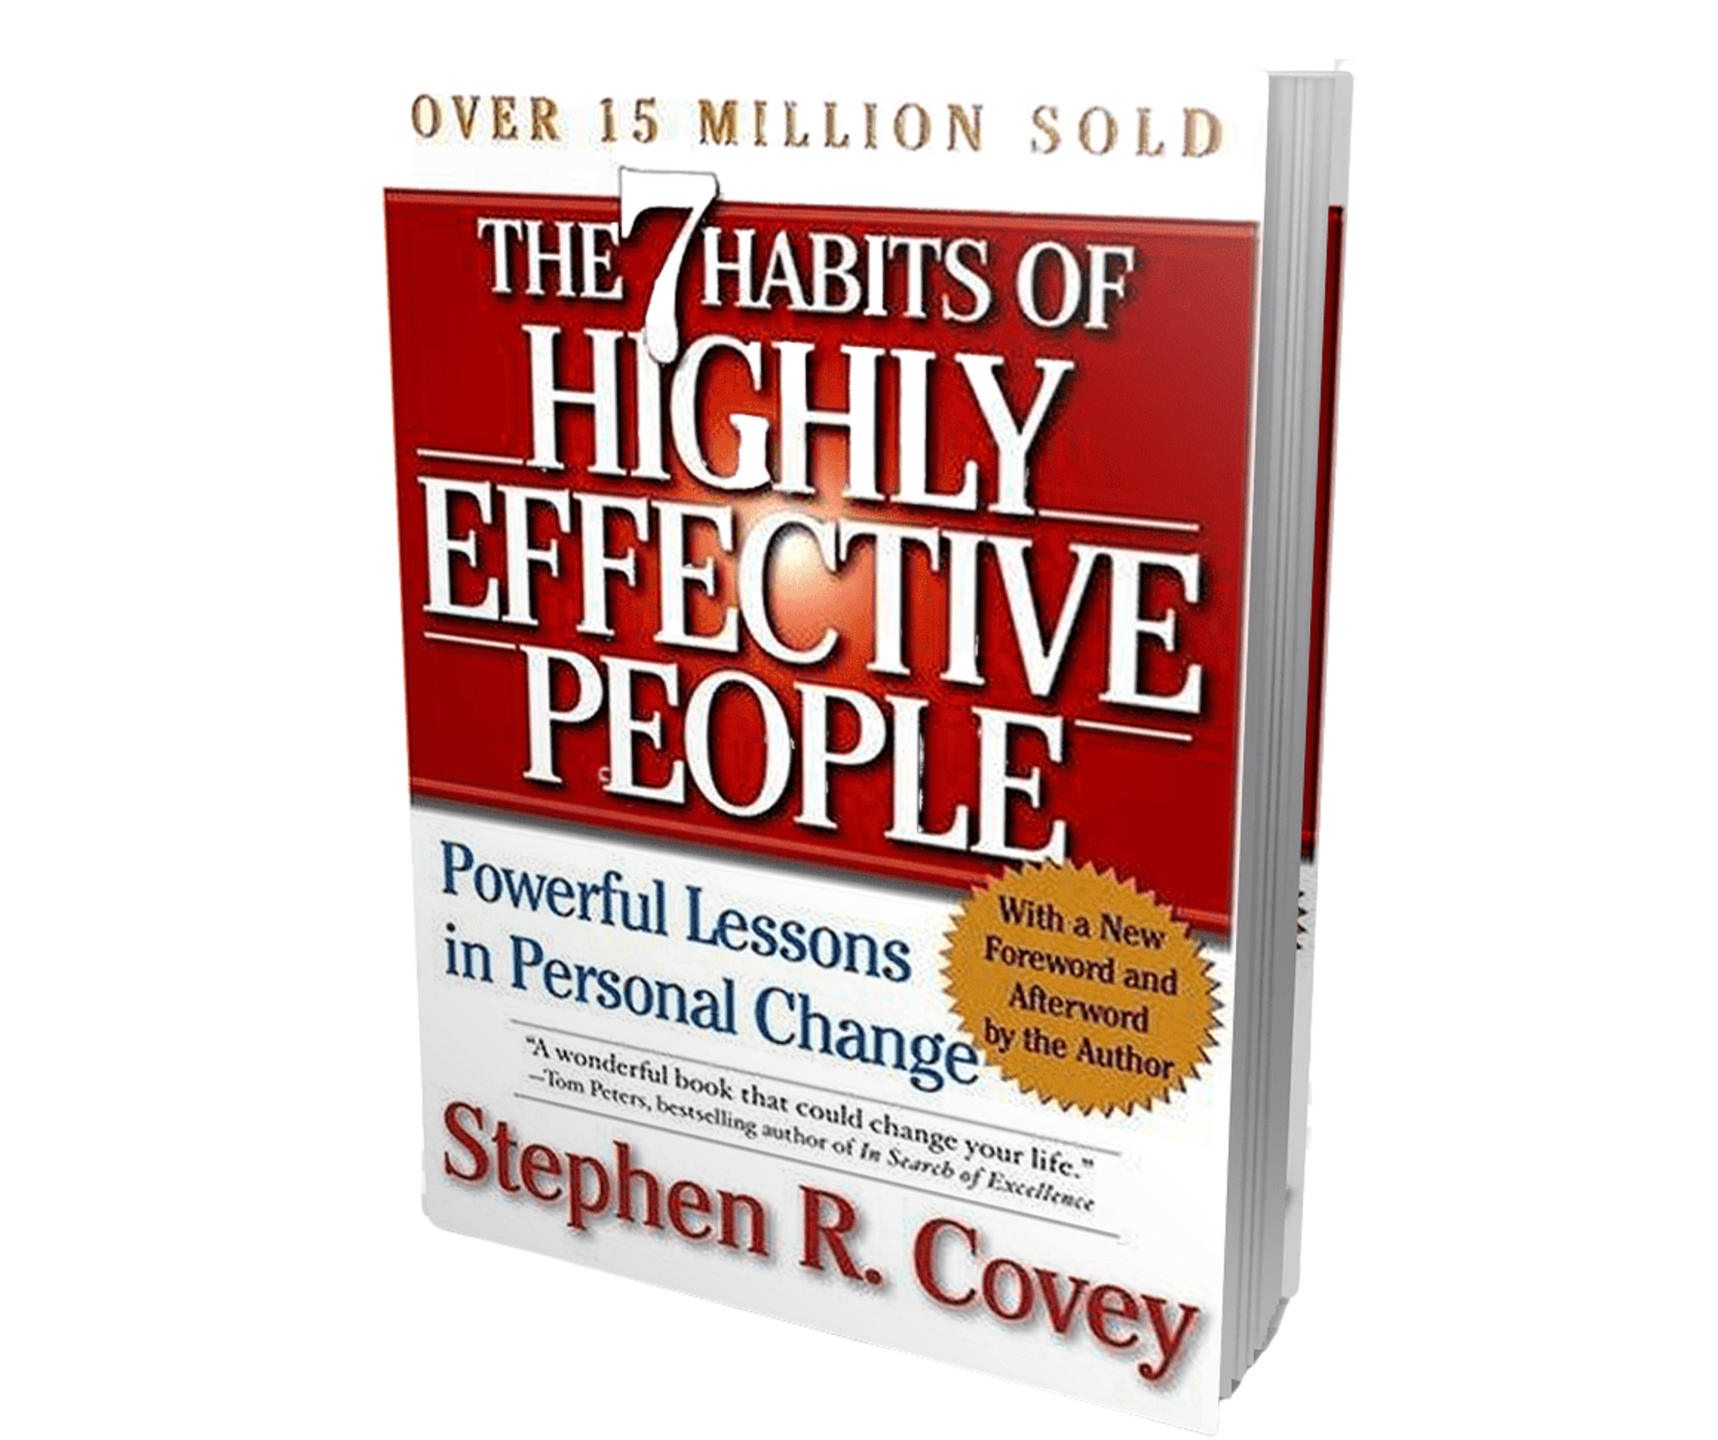 photo of the 7 habits of highly effective people book by stephen covey